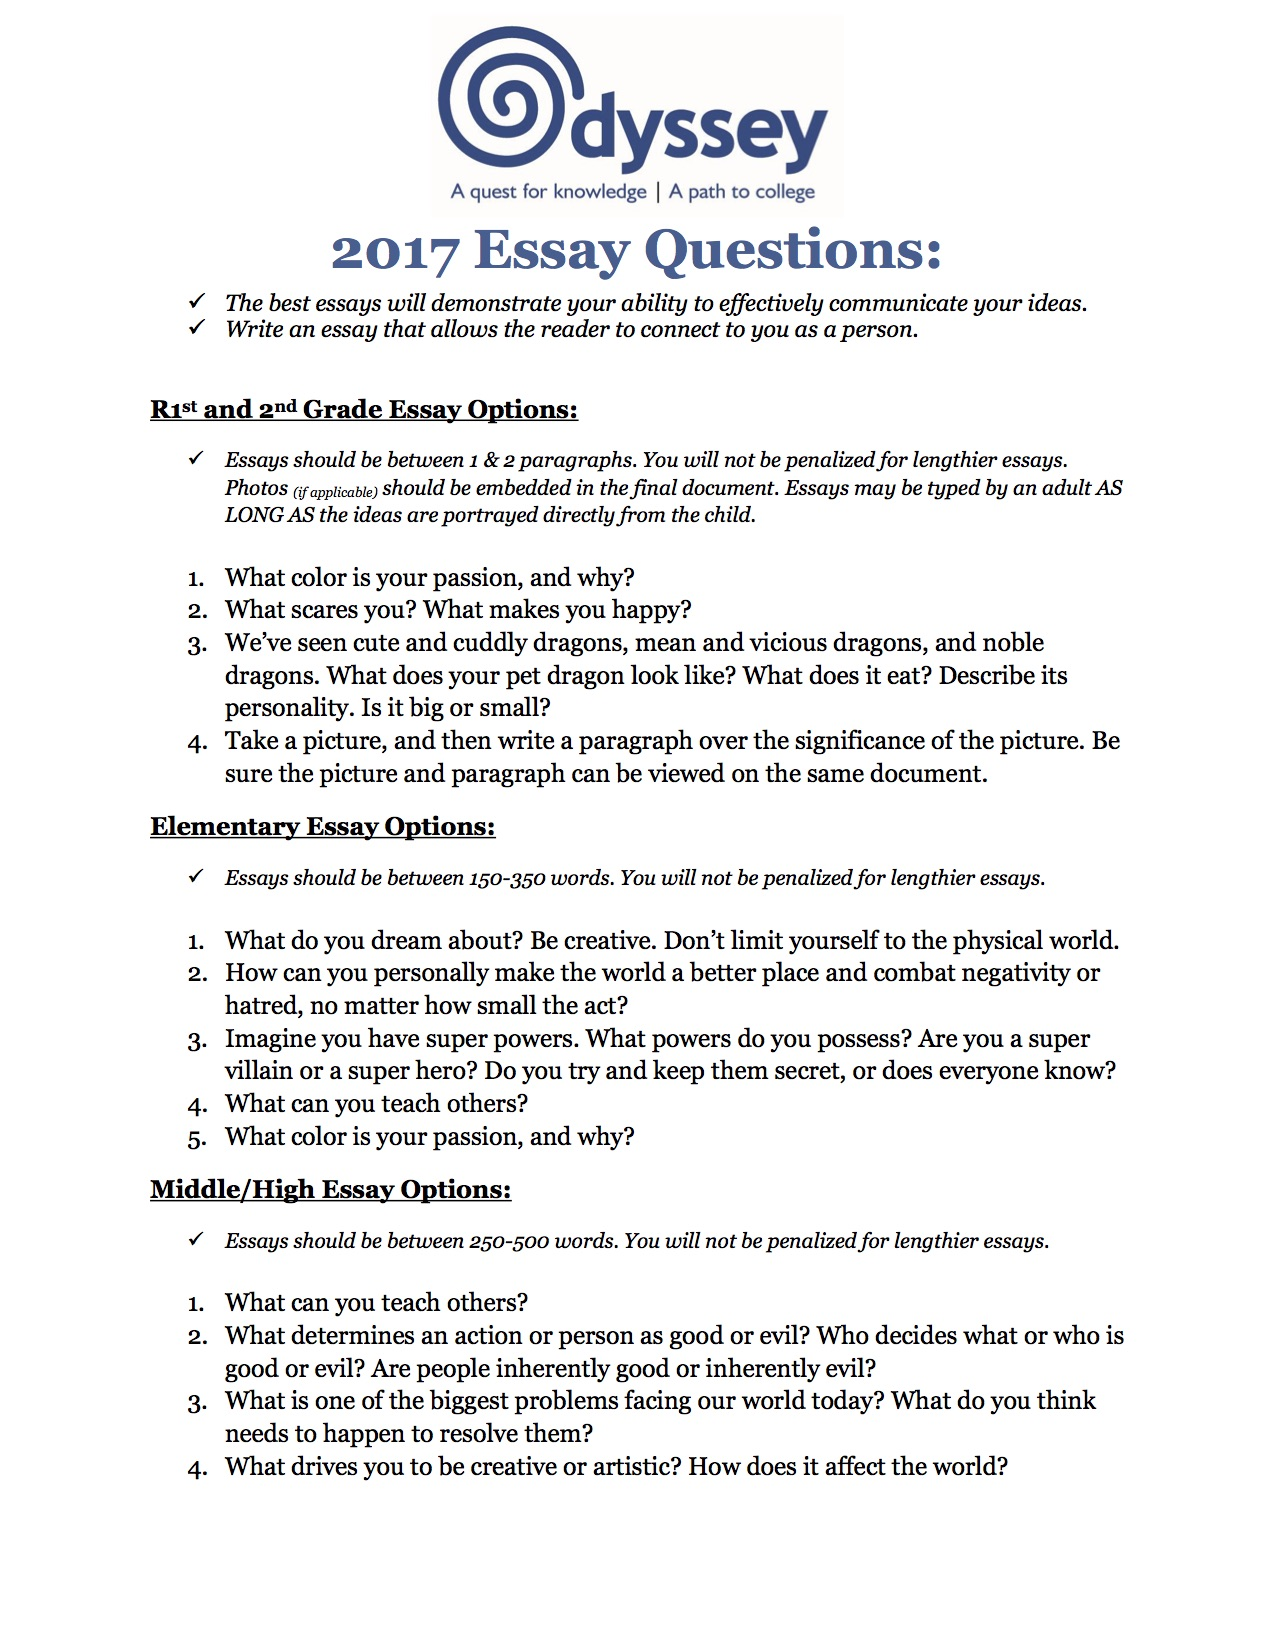 008 Student Essay Example The Odyssey Topics Greek Family How To Good Awesome Medical Competitions 2017 Database Template Full